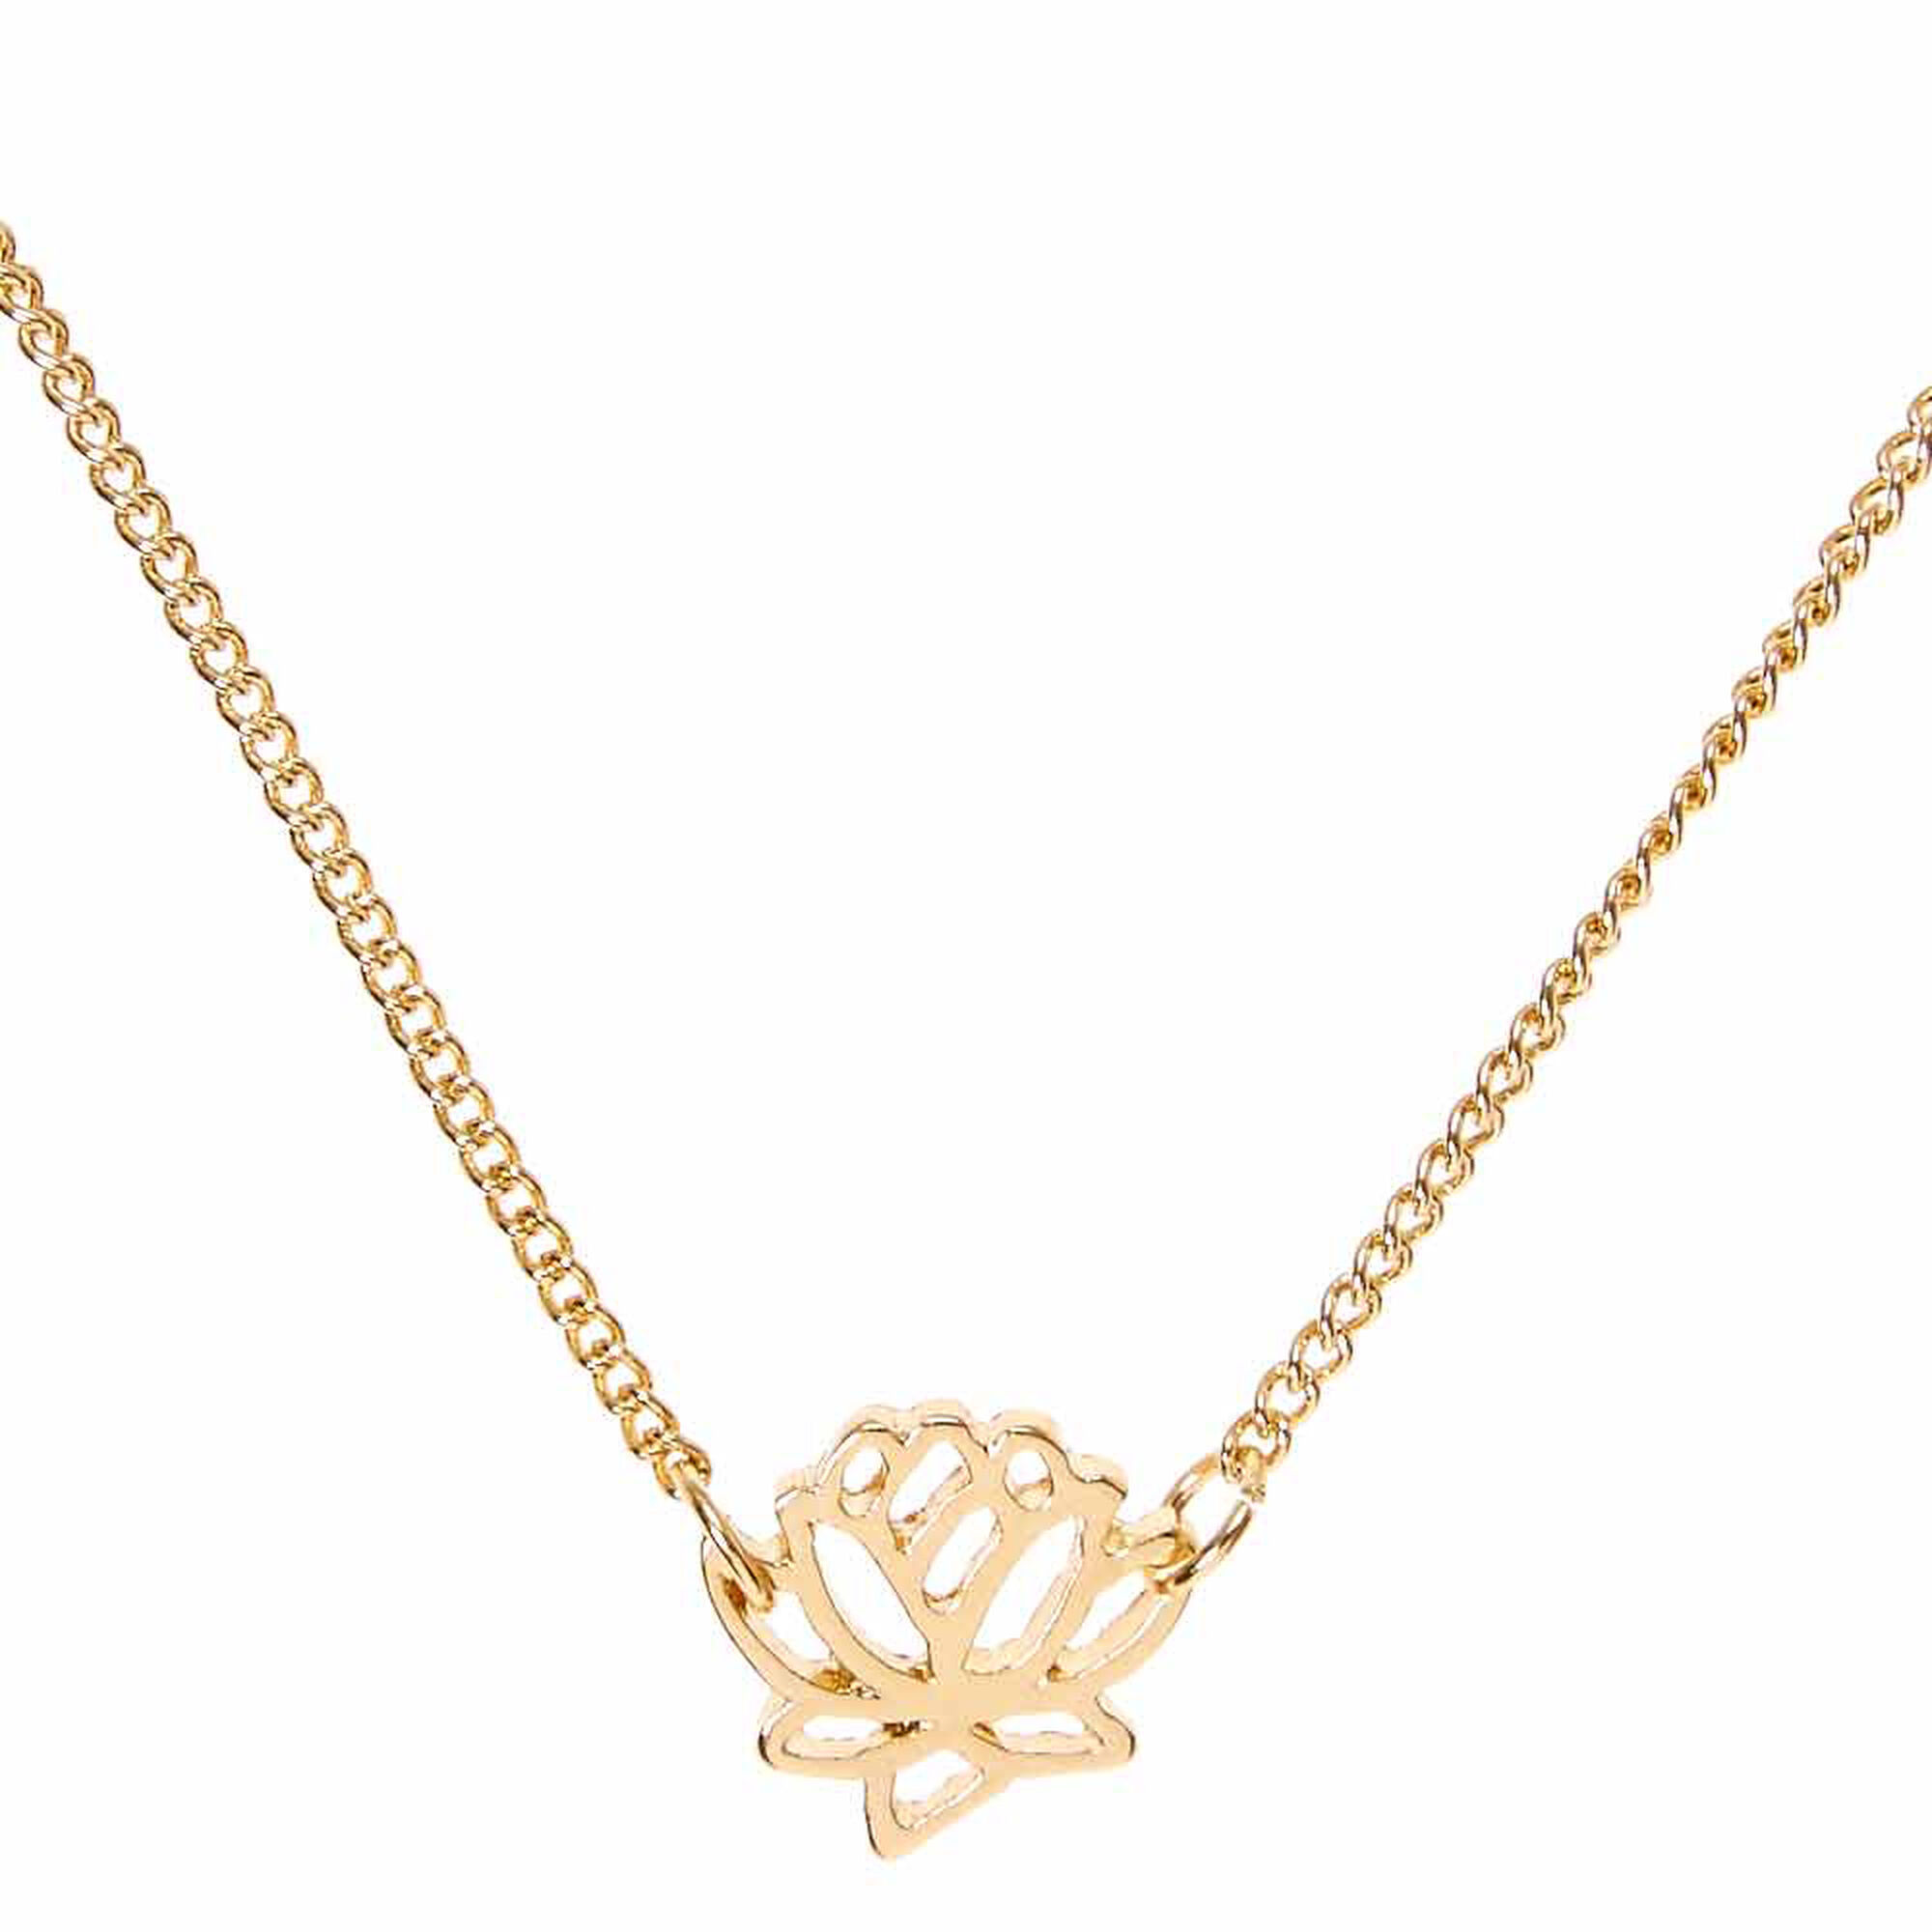 Gold tone lotus pendant necklace claires us gold tone lotus pendant necklace mozeypictures Image collections